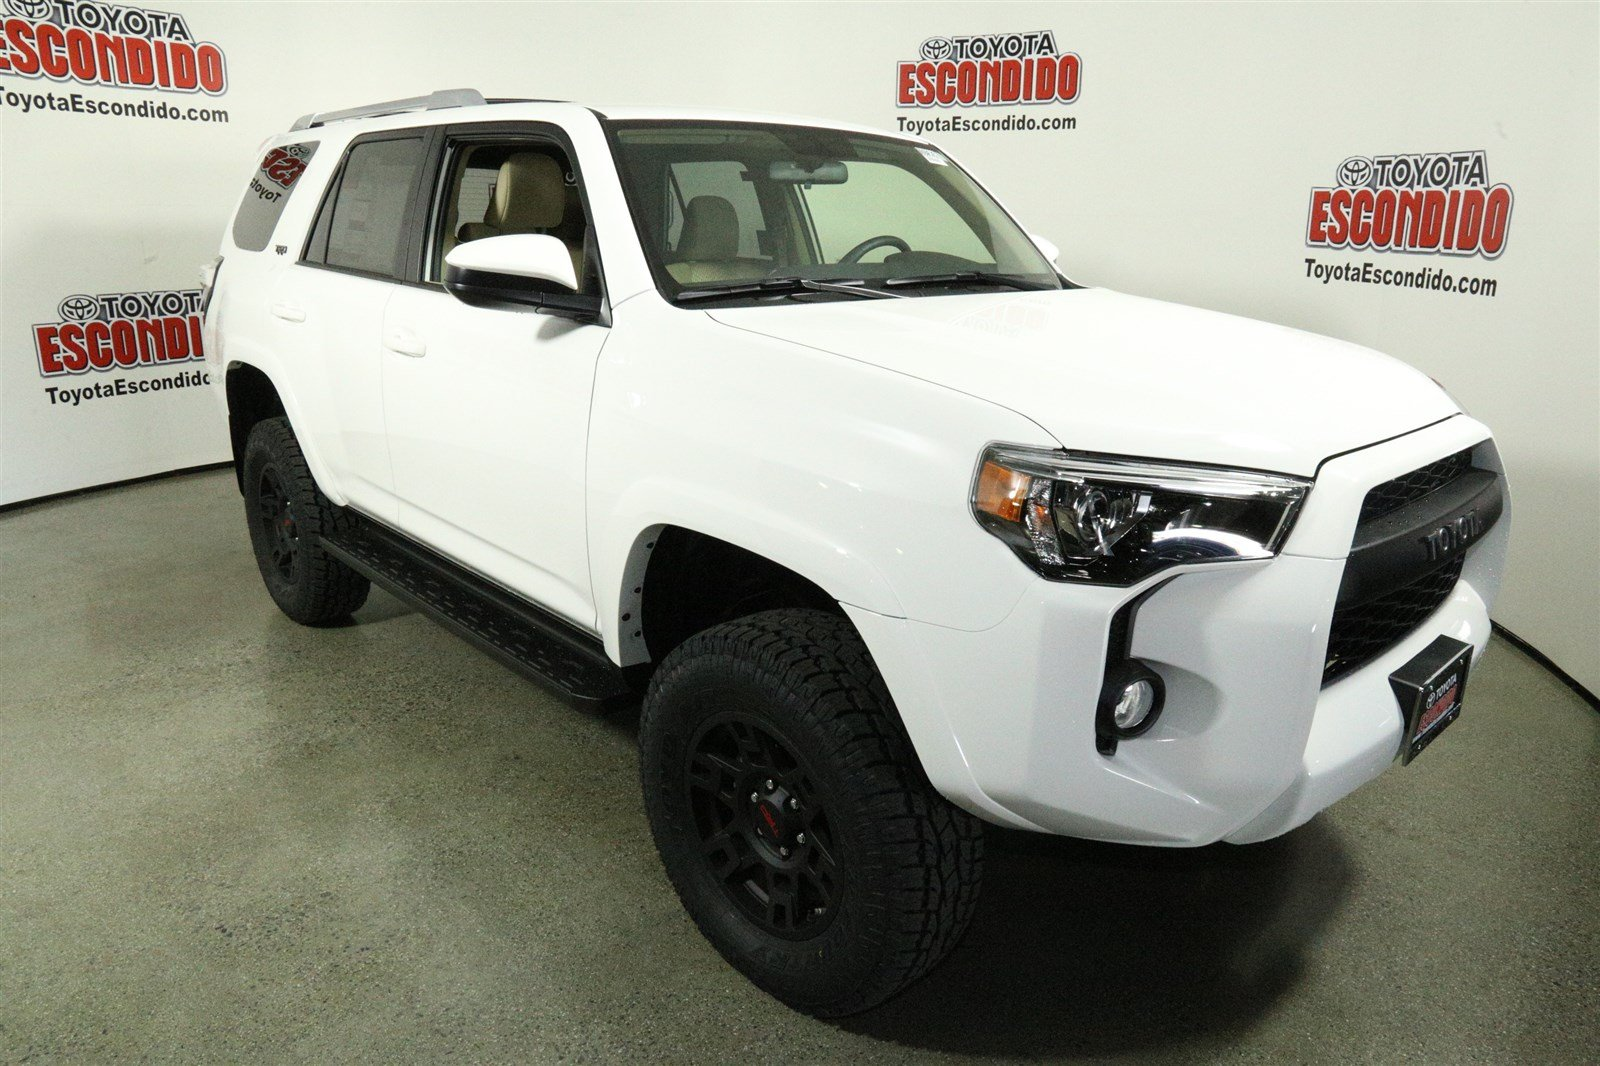 new 2018 toyota 4runner sr5 sport utility in escondido 1015858 toyota escondido. Black Bedroom Furniture Sets. Home Design Ideas